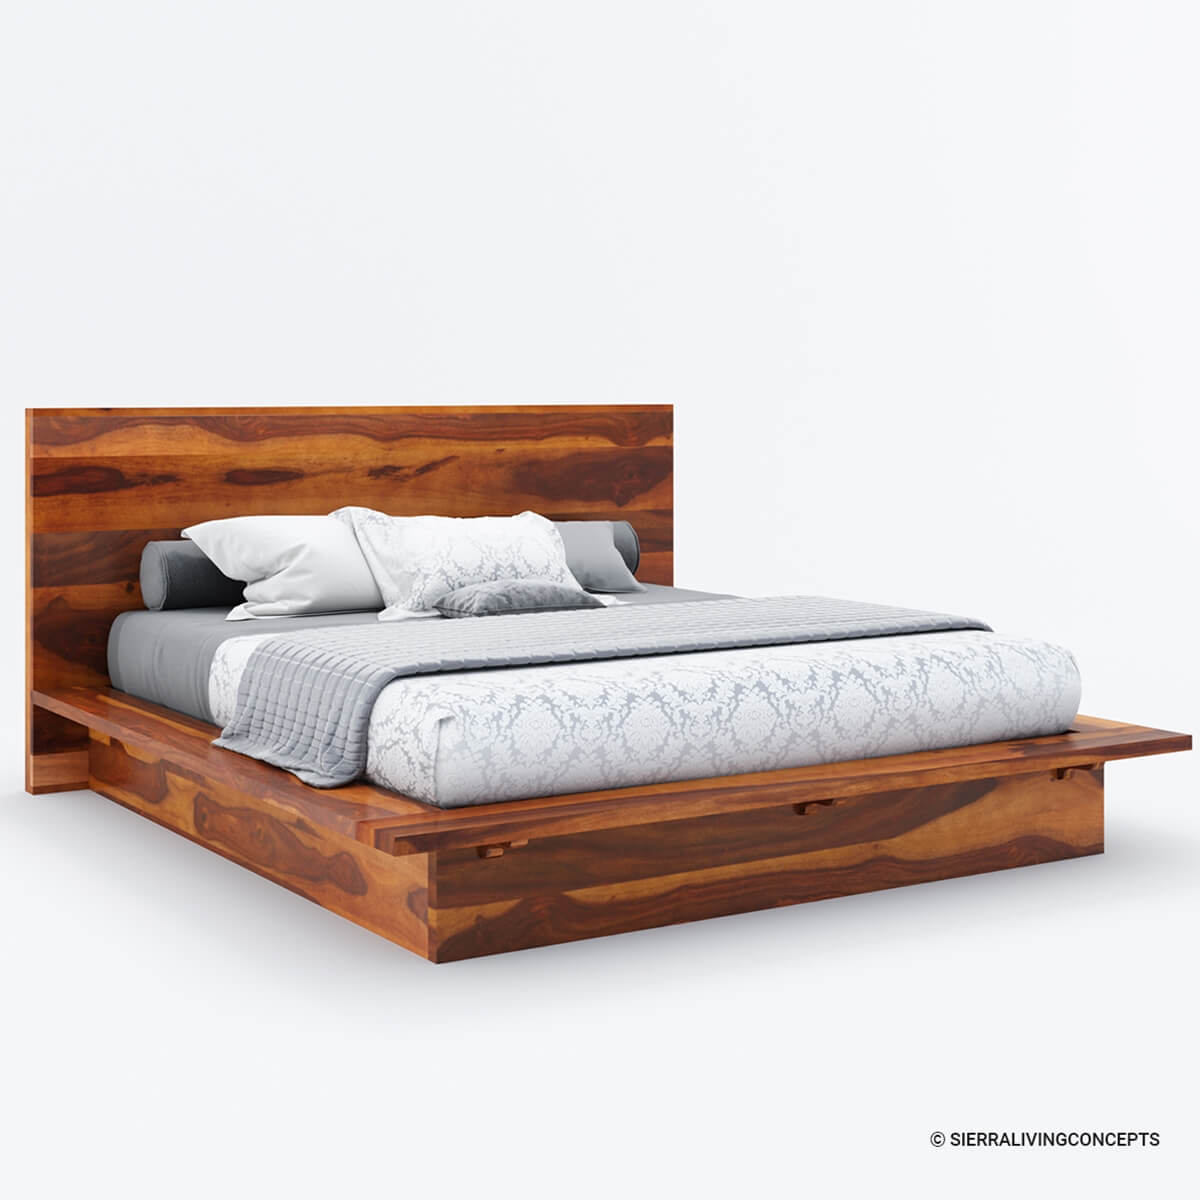 California king size solid wood platform bed frame for King size bed frame